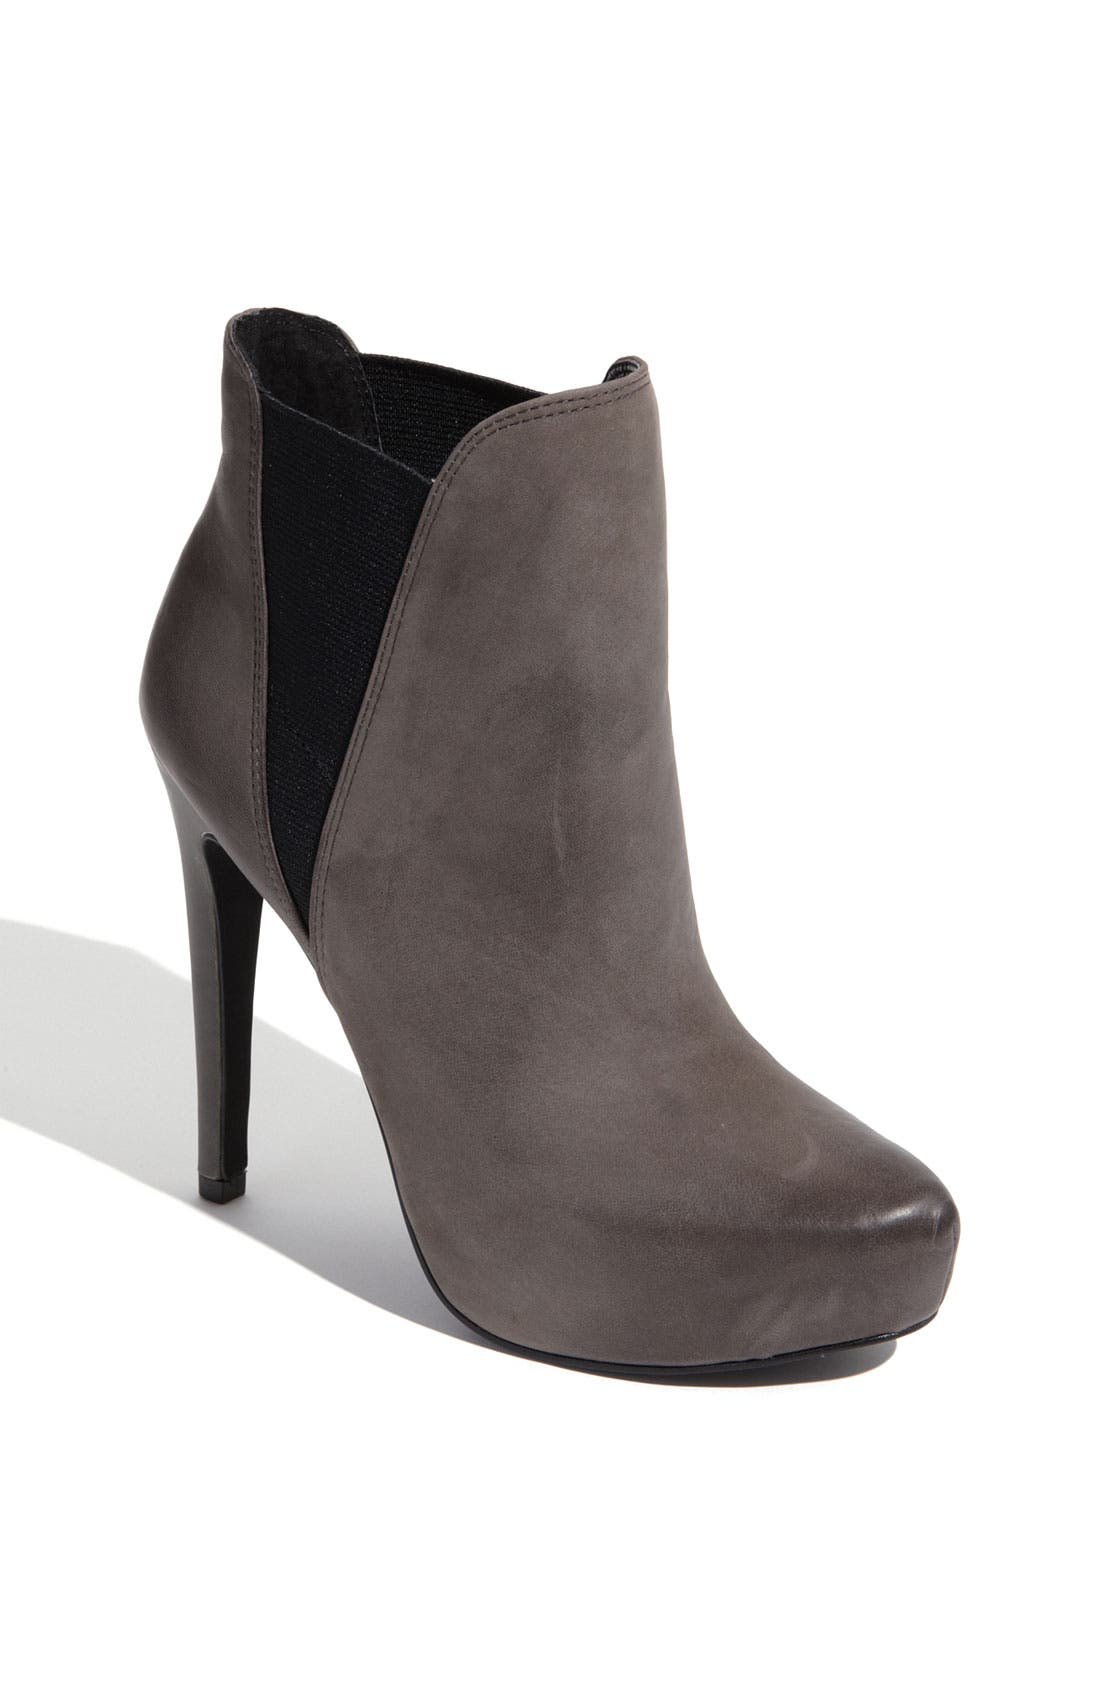 JESSICA SIMPSON, 'Francis' Bootie, Main thumbnail 1, color, 020